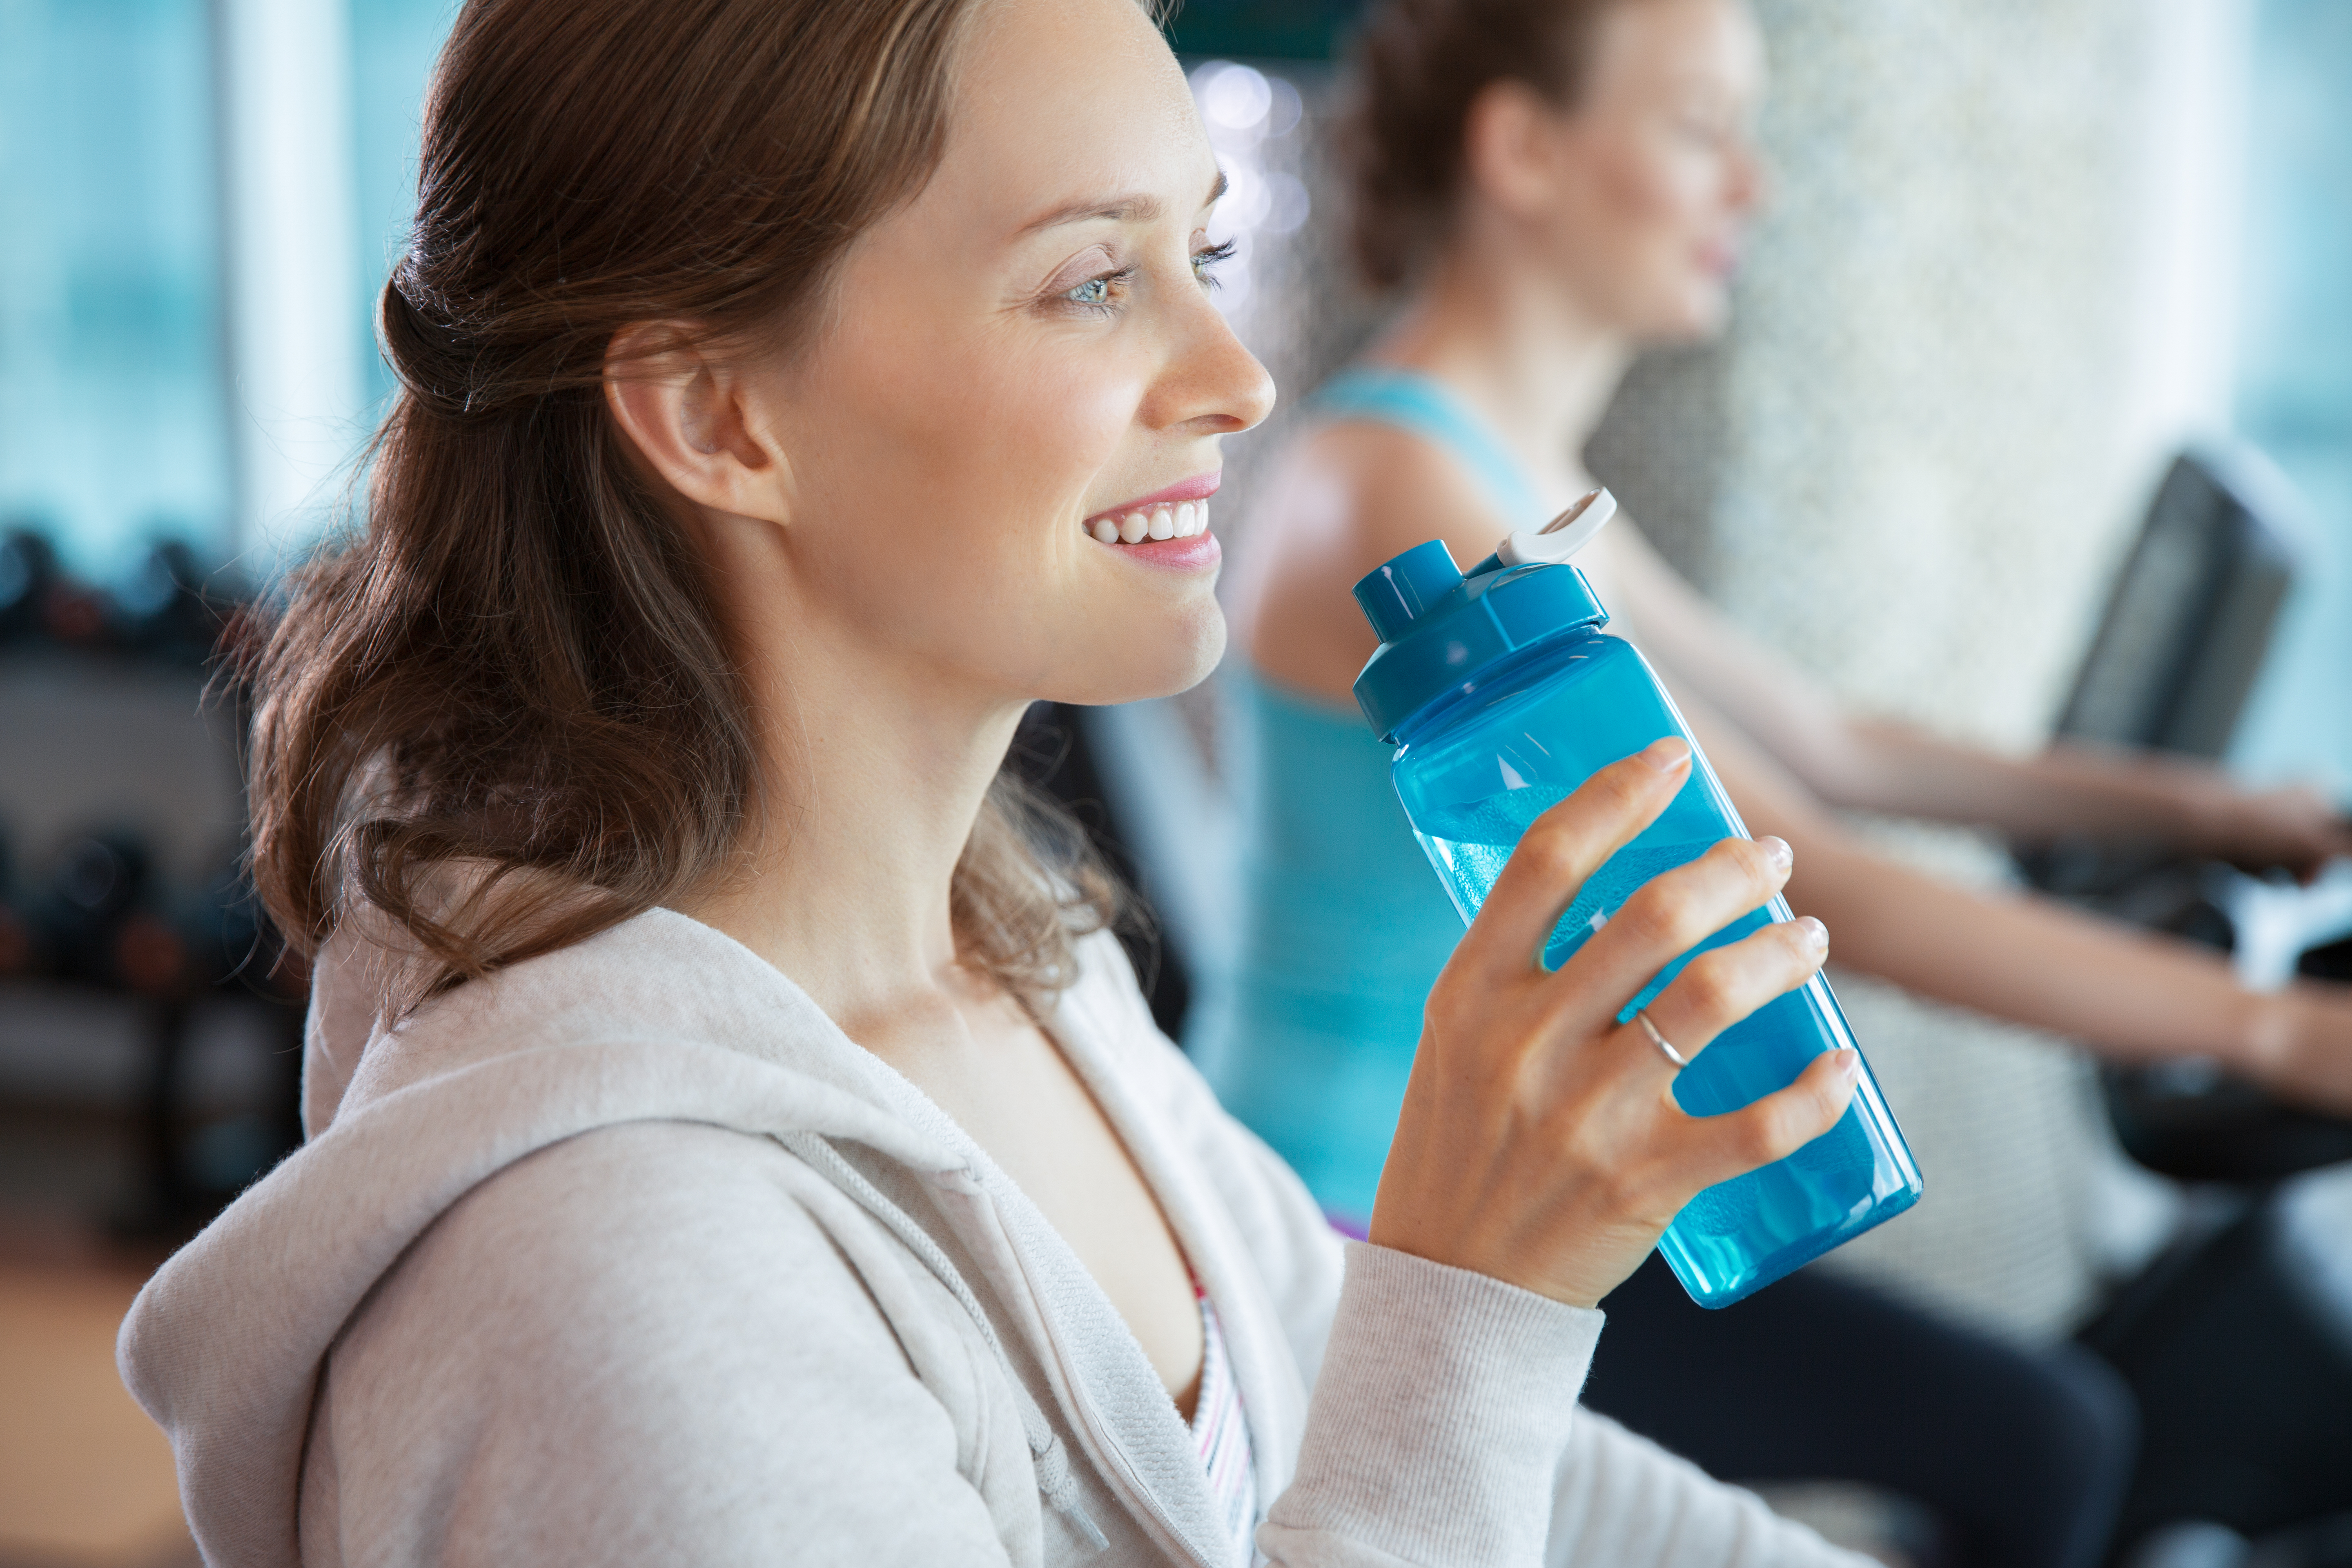 Smiling young Caucasian woman drinking water while training on exercise bike in modern gym. Woman riding spinning bike in background